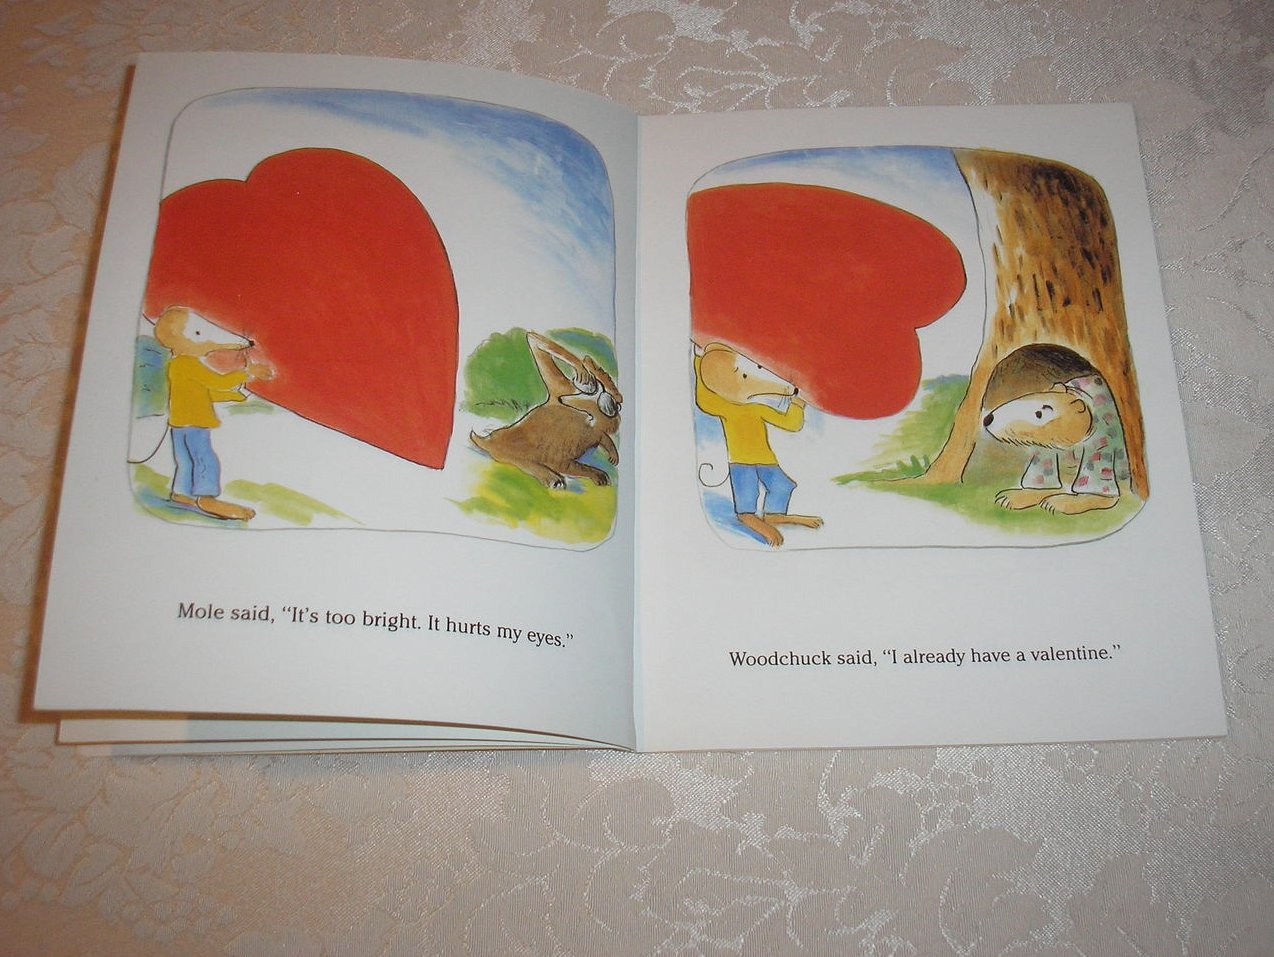 Image 4 of Little Mouse's Big Valentine Thacher Hurd good sc